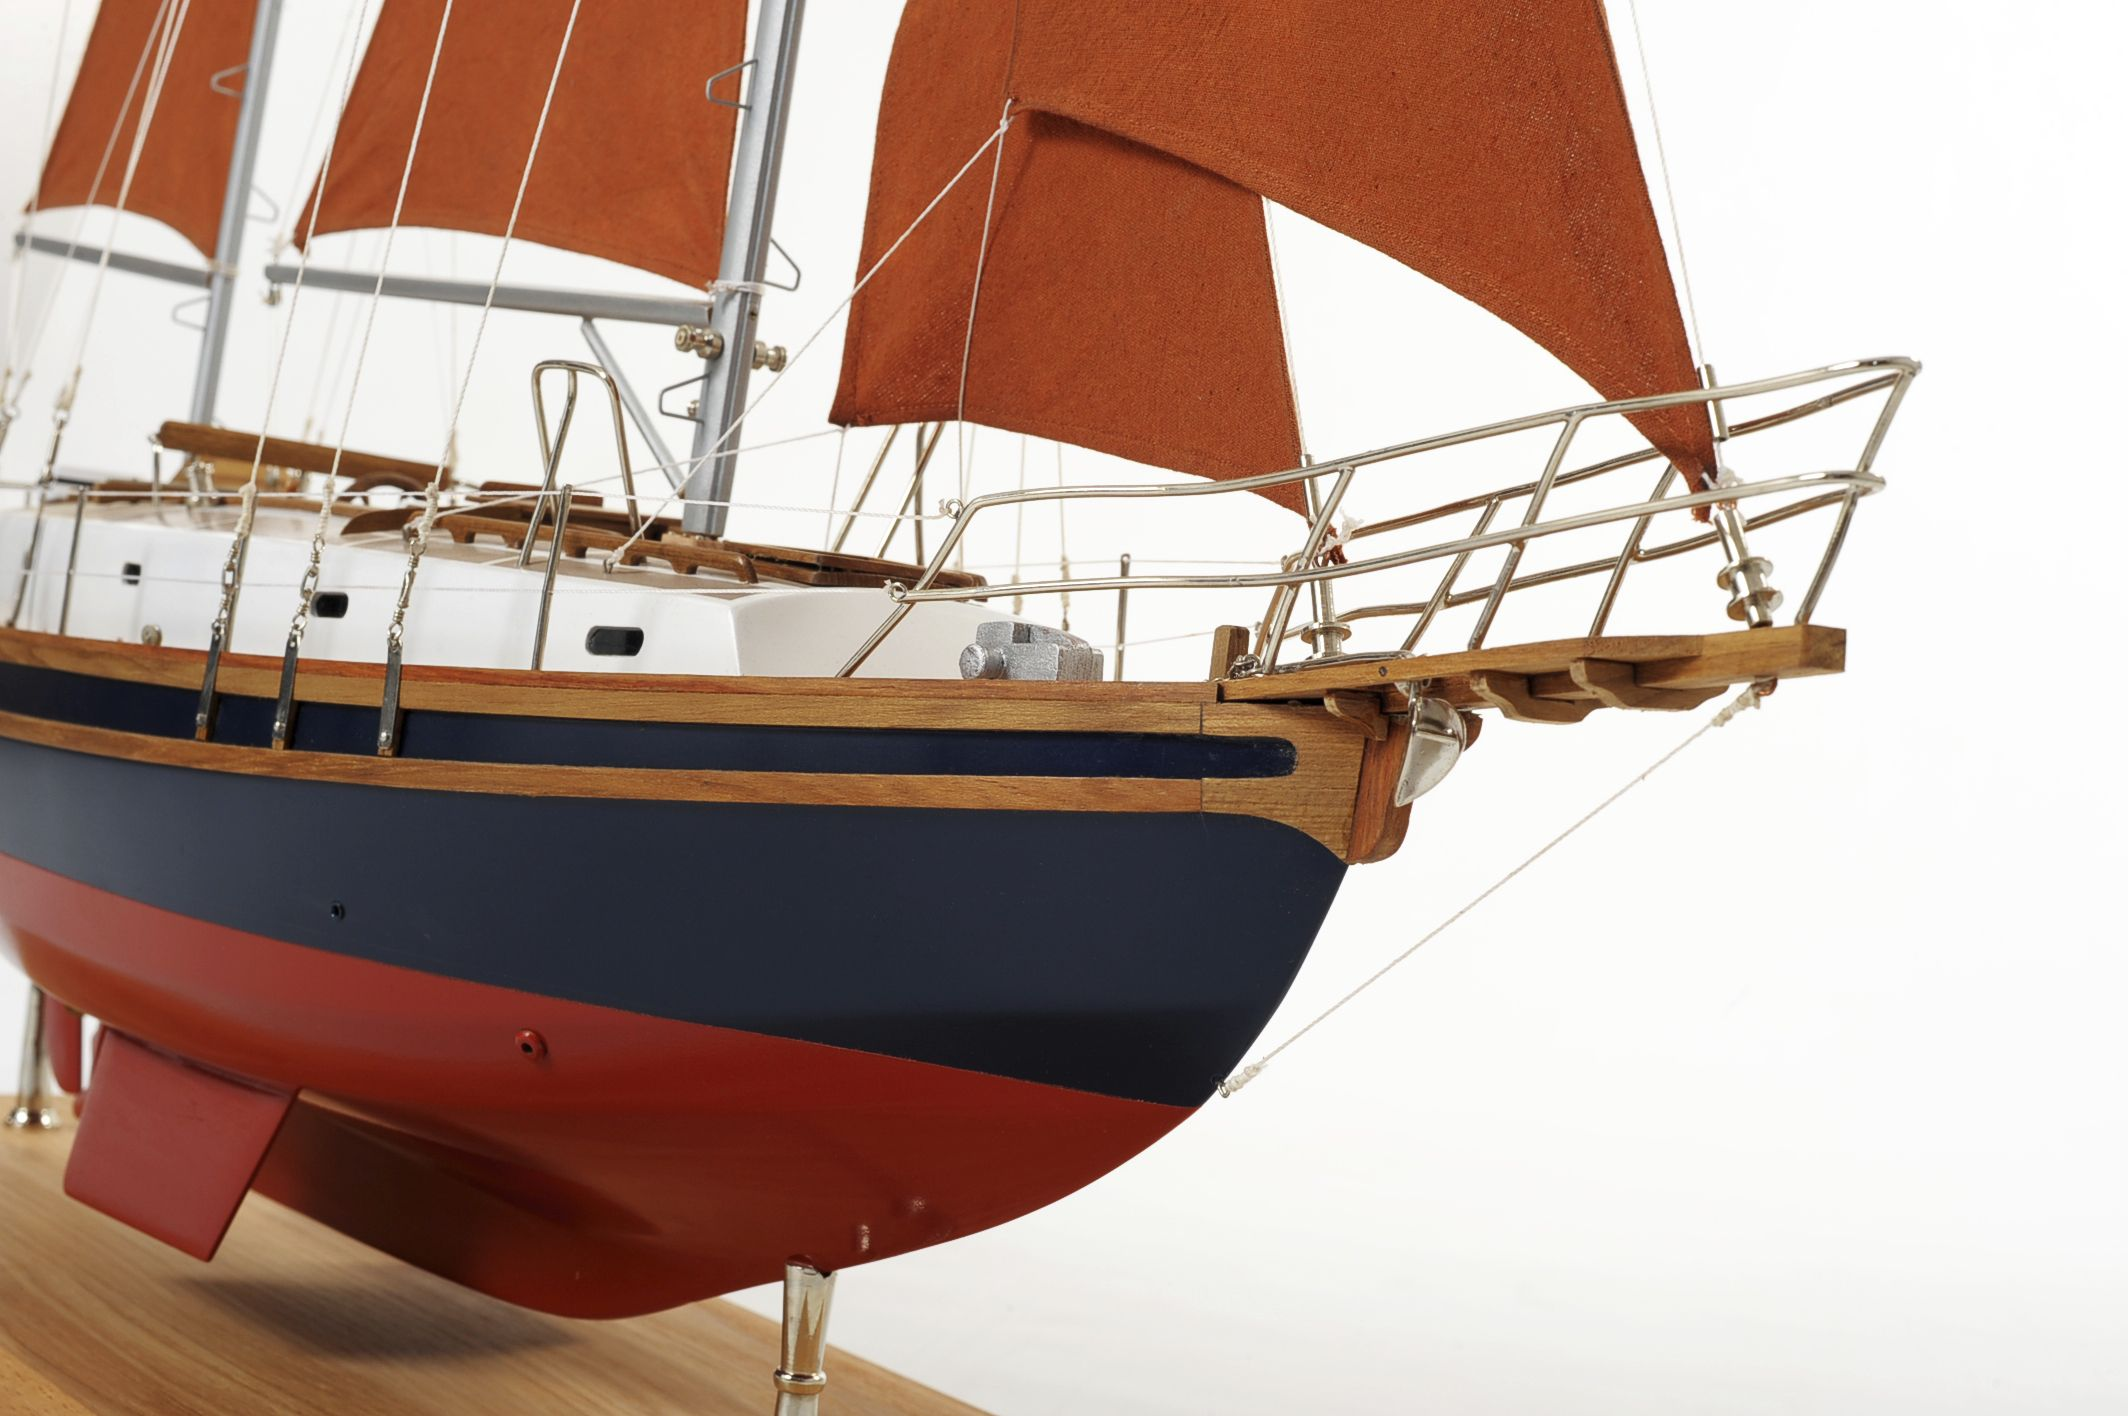 1483-6474-Wight-Steel-Sailing-Yacht